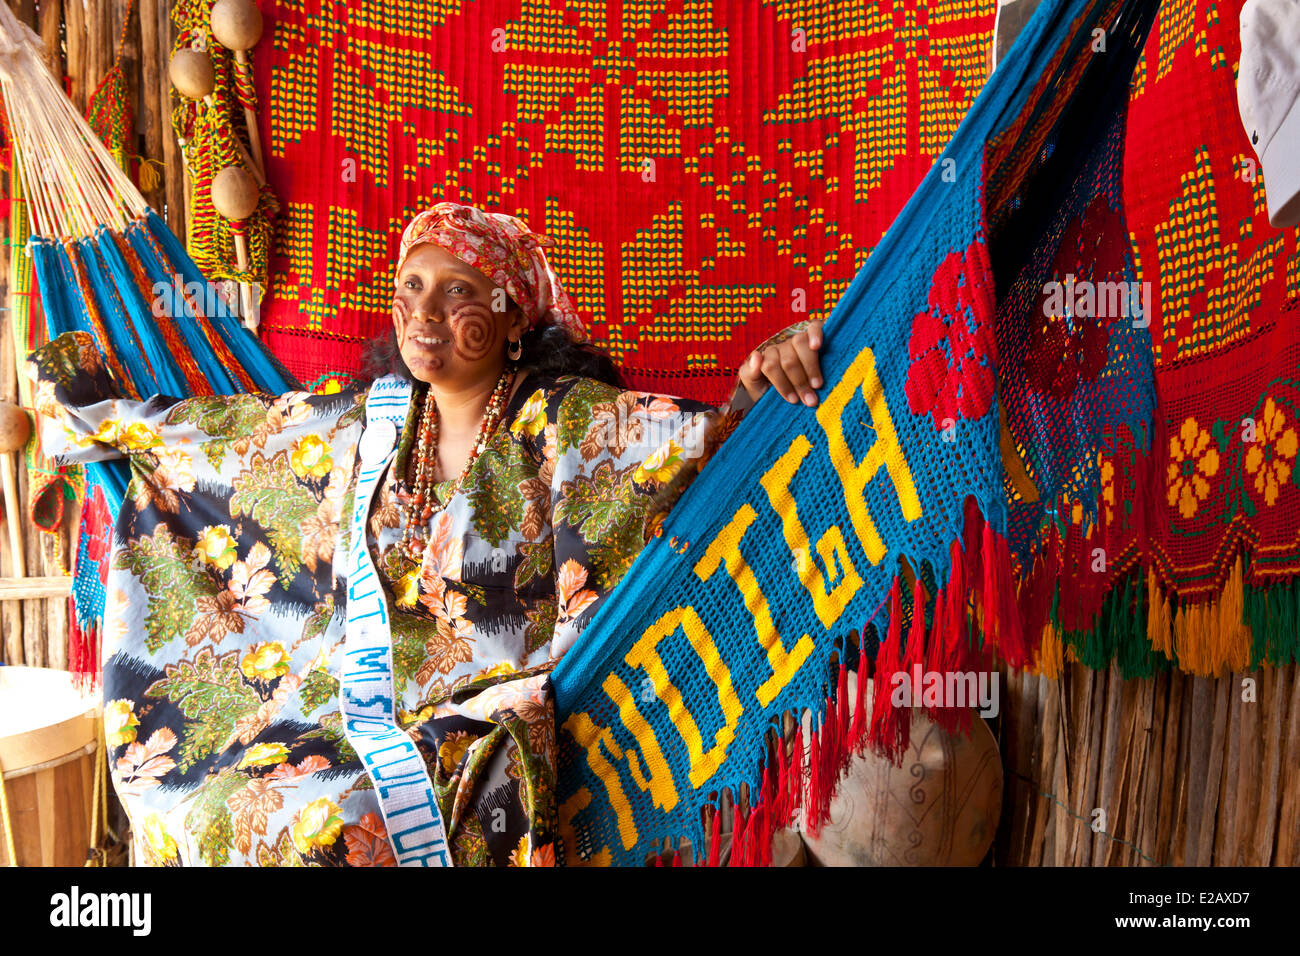 Colombia, La Guajira Department, Uribia, candidate for the election of the Majayut de Oro, the golden young lady, - Stock Image